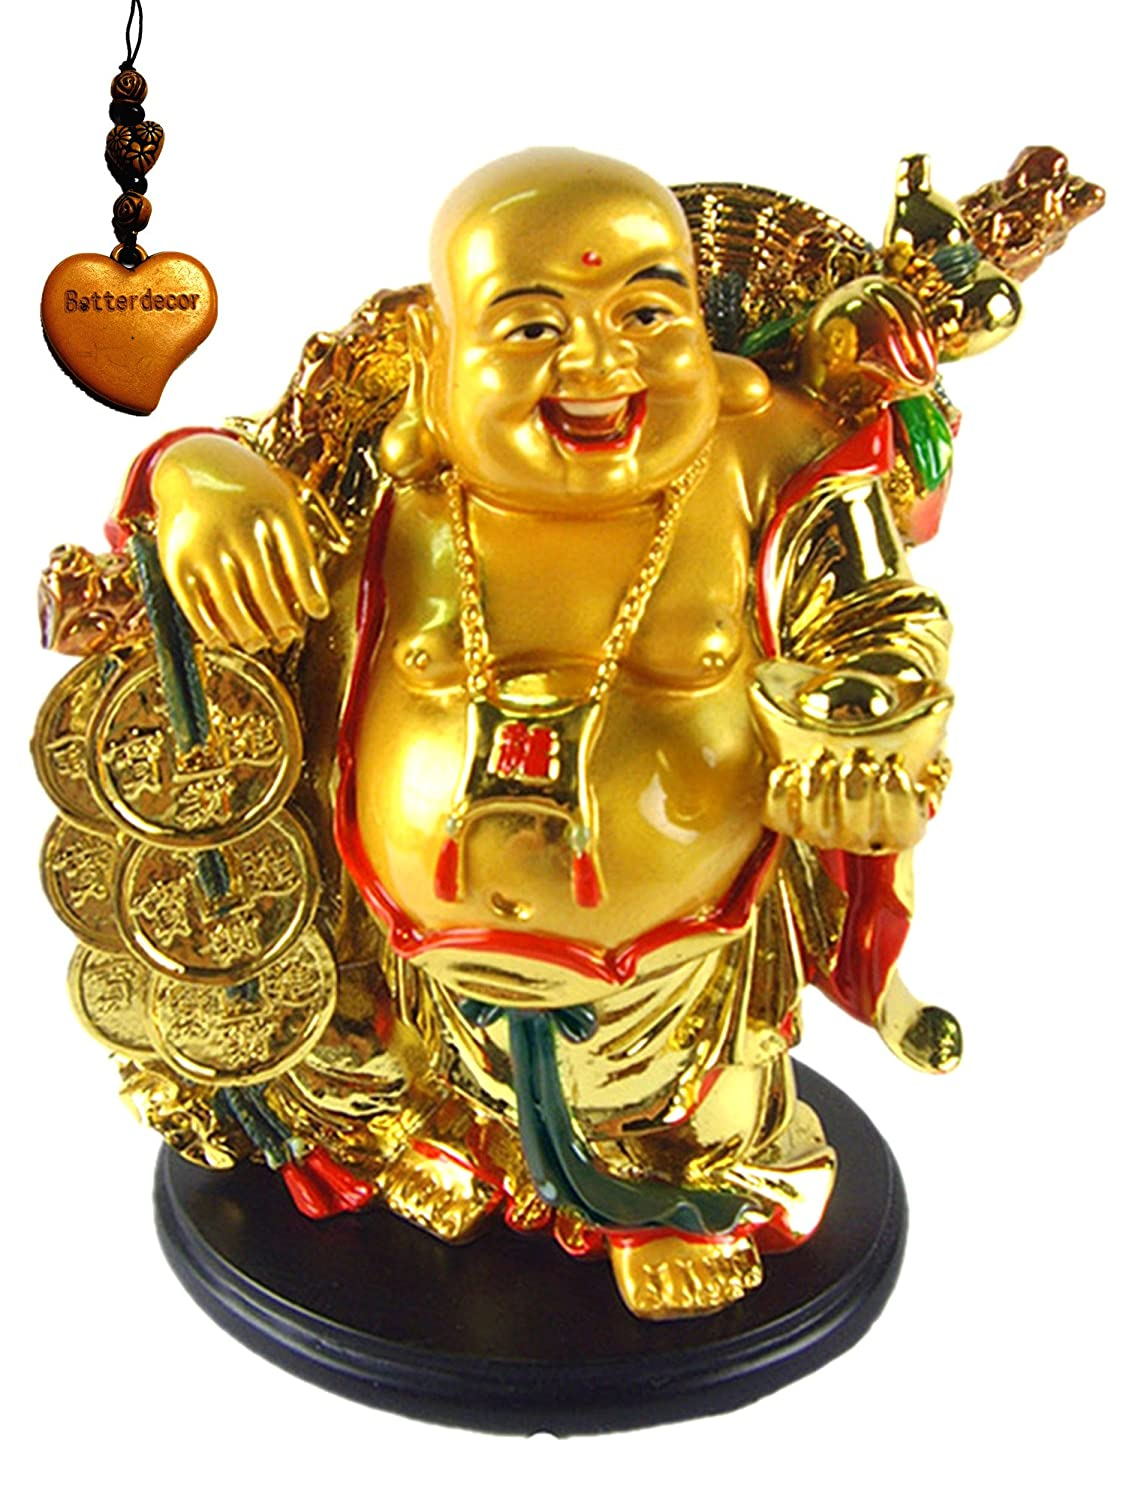 Gold Resin Laughing Buddha Riding On Elephant Feng Shui Statue Sculpture Home Decoration